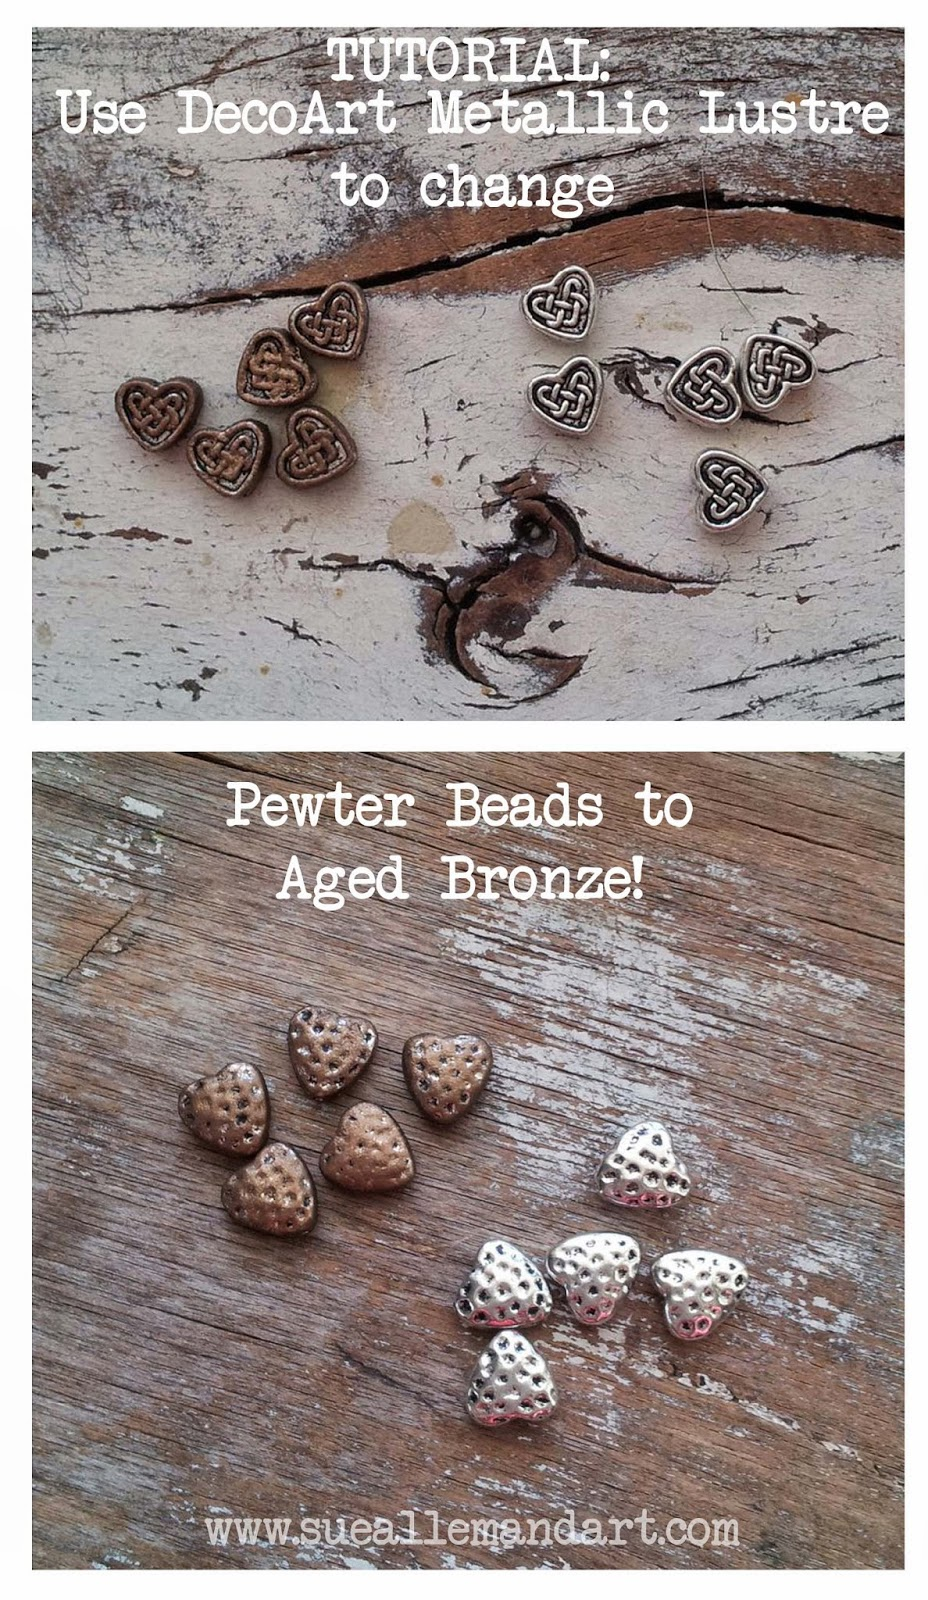 Use DecoArt Metallic Lustre to change pewter beads to aged bronze - by sueallemandart.com  #decoart #decoartacrylicpaints